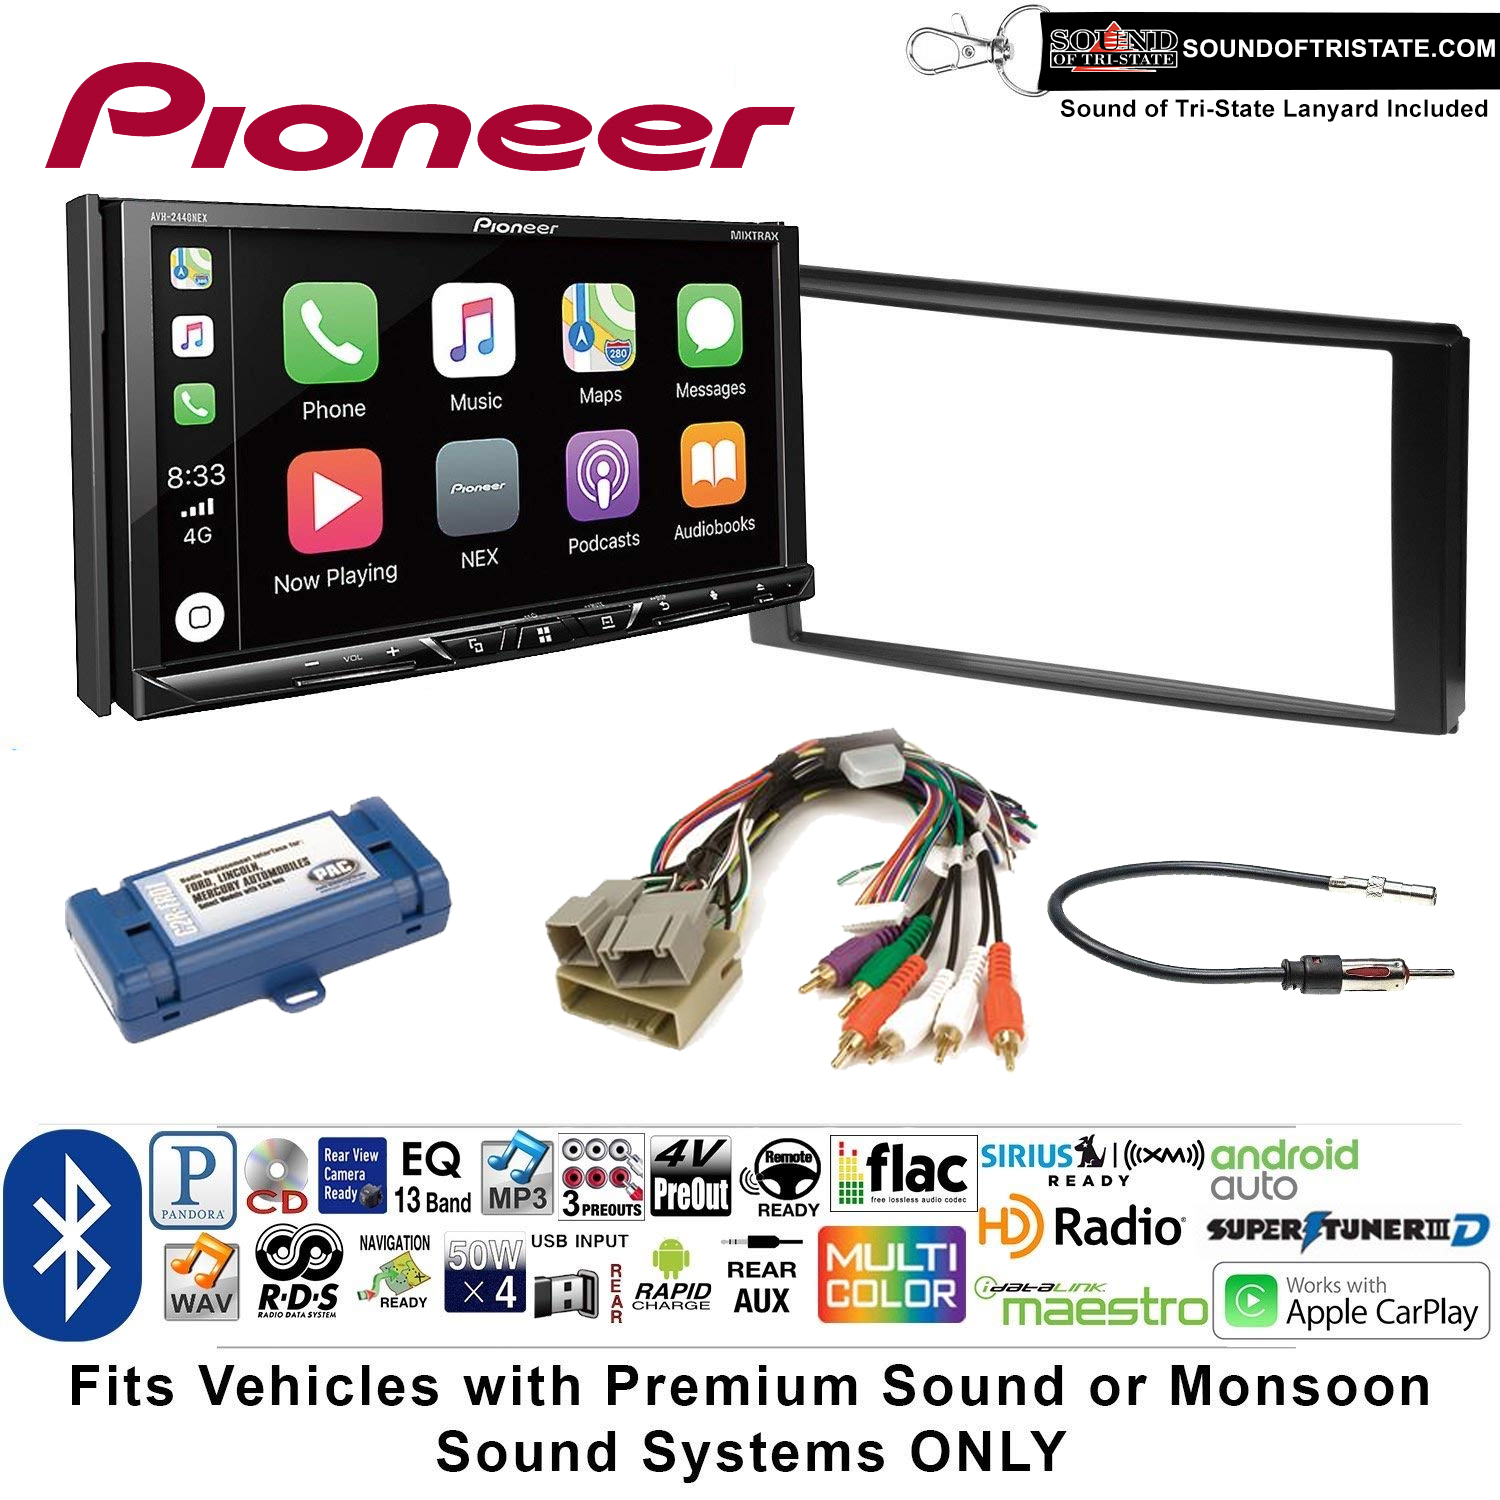 Pioneer AVH-2440NEX Double Din Radio Install Kit with Apple CarPlay, Android Auto and Bluetooth Fits 2007-2010 Edge (With factory amplified sound) + Sound of Tri-State Lanyard